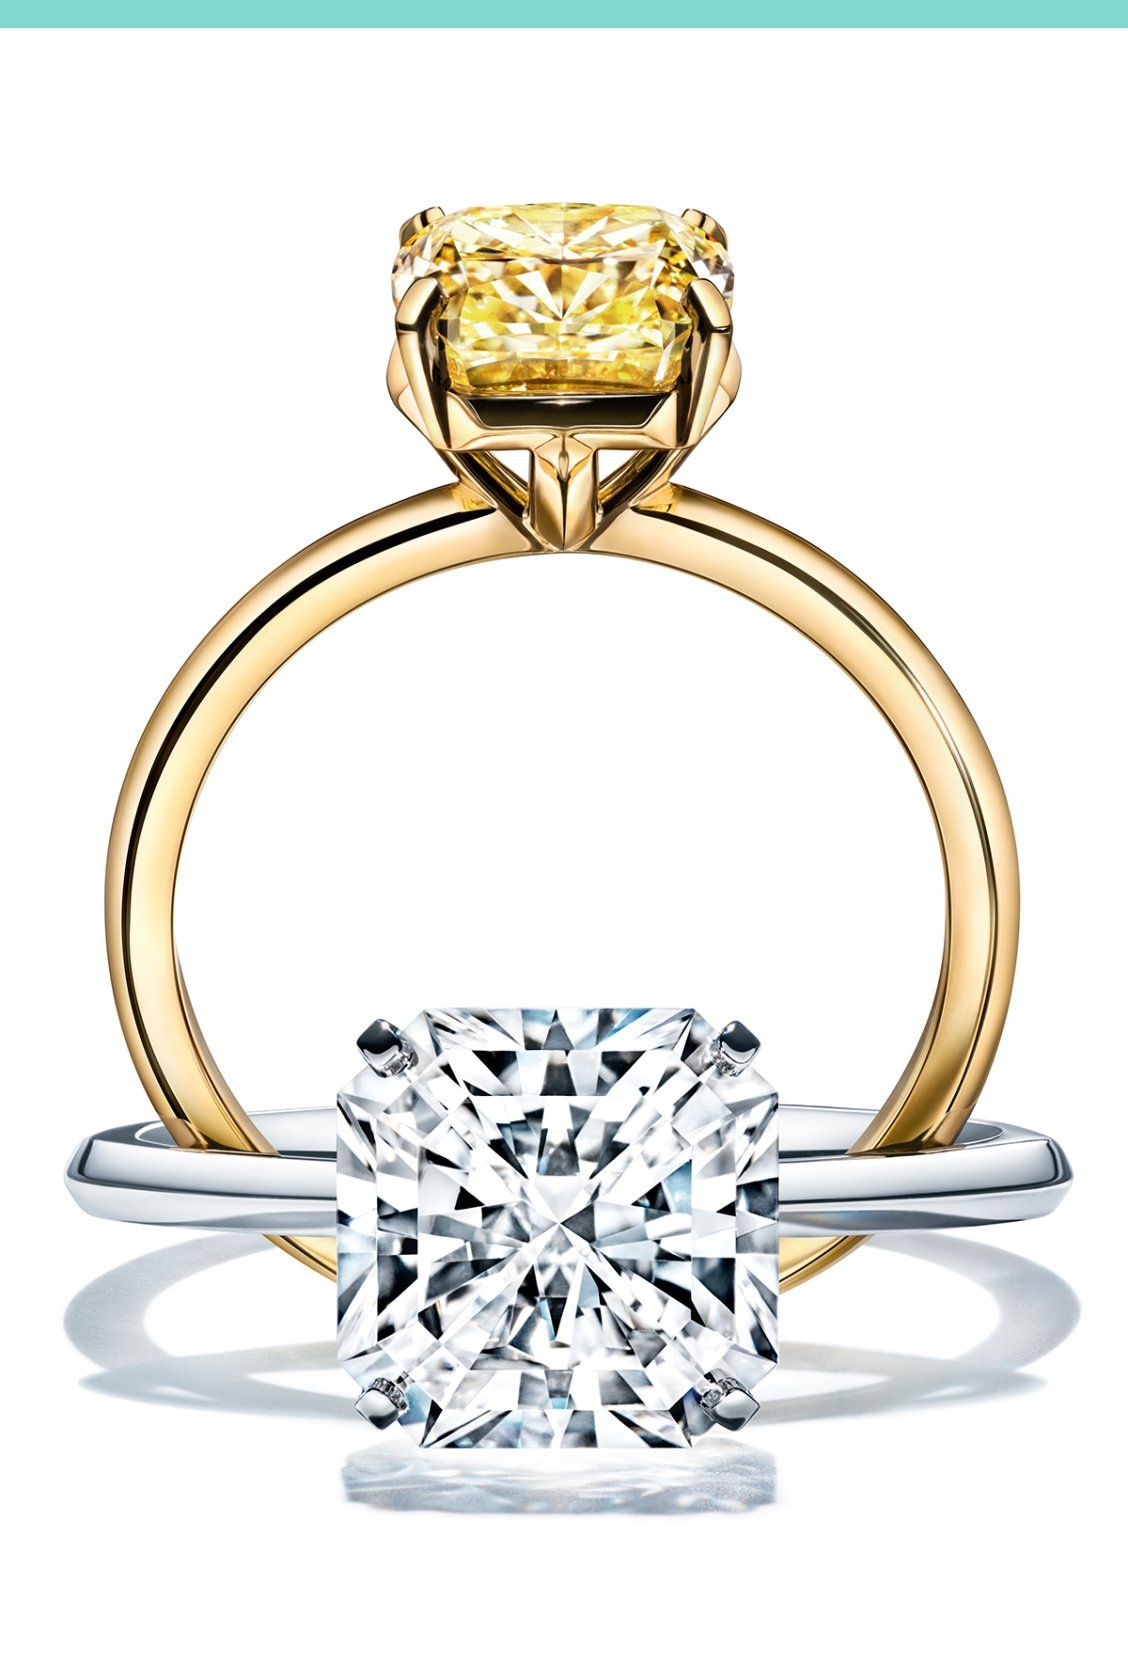 d45e4f8a0 The new Tiffany True is available in platinum with an innovative square  mixed True-cut white diamond or in 18k gold with a fancy yellow cushion  modified ...